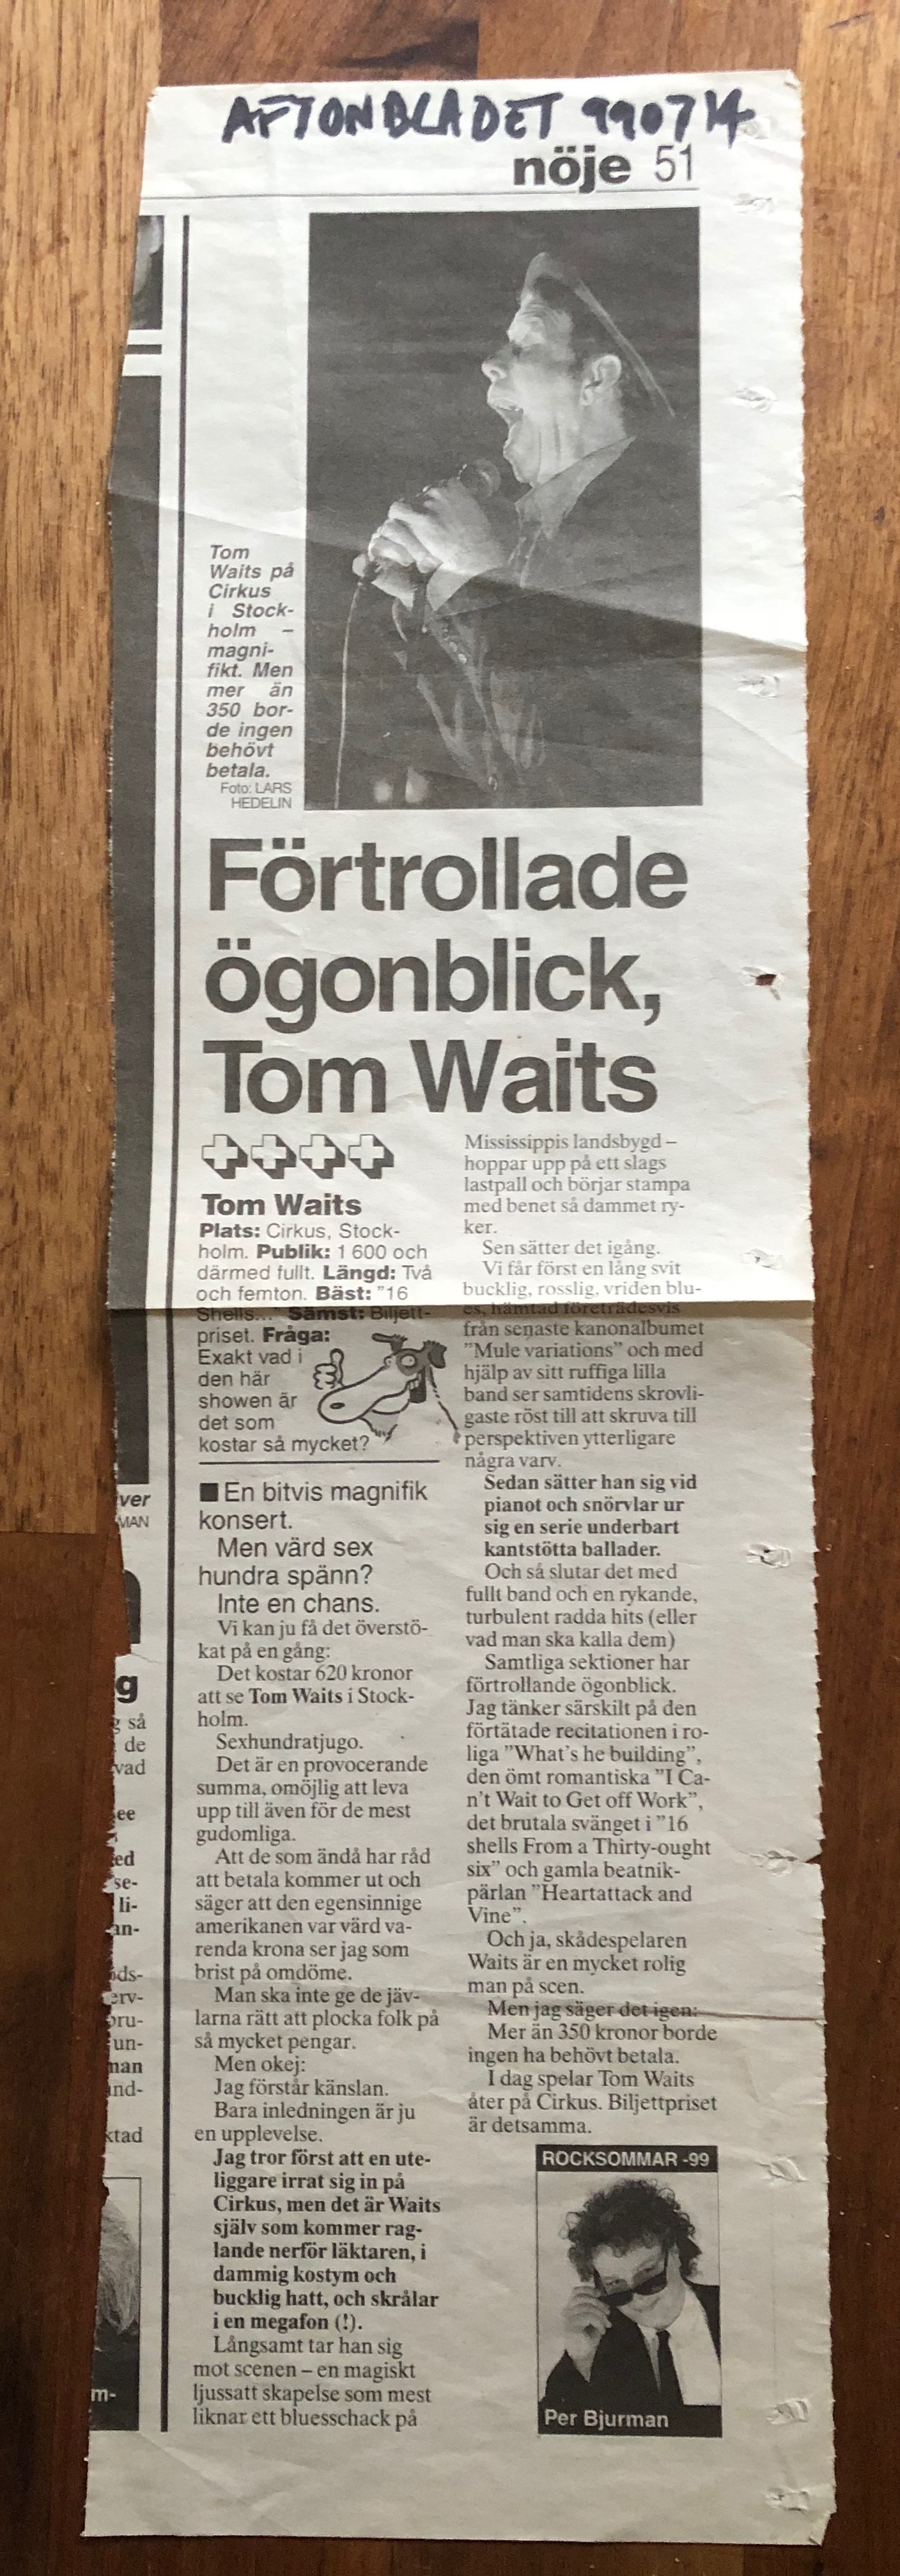 Tom Waits review